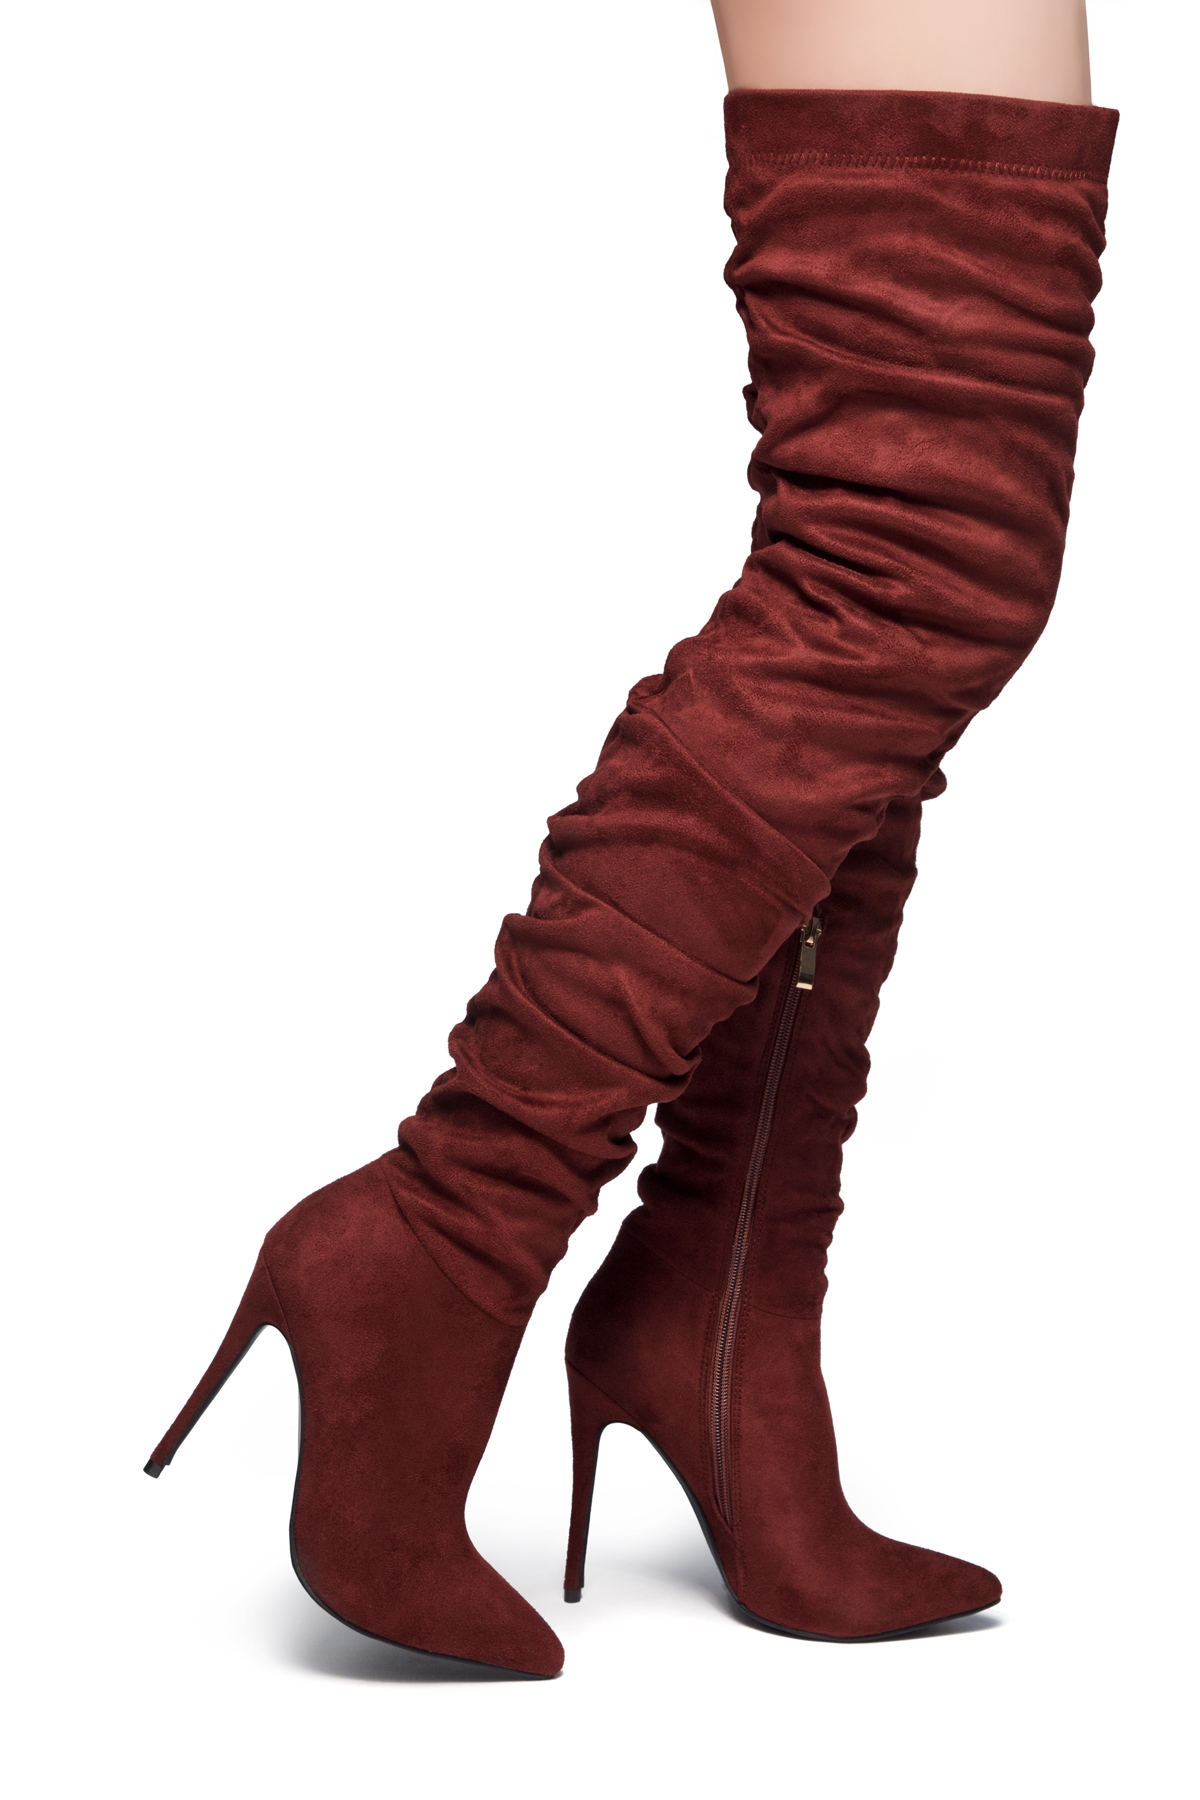 1200x1800 Deadly Lust Pointed Toe, Stiletto